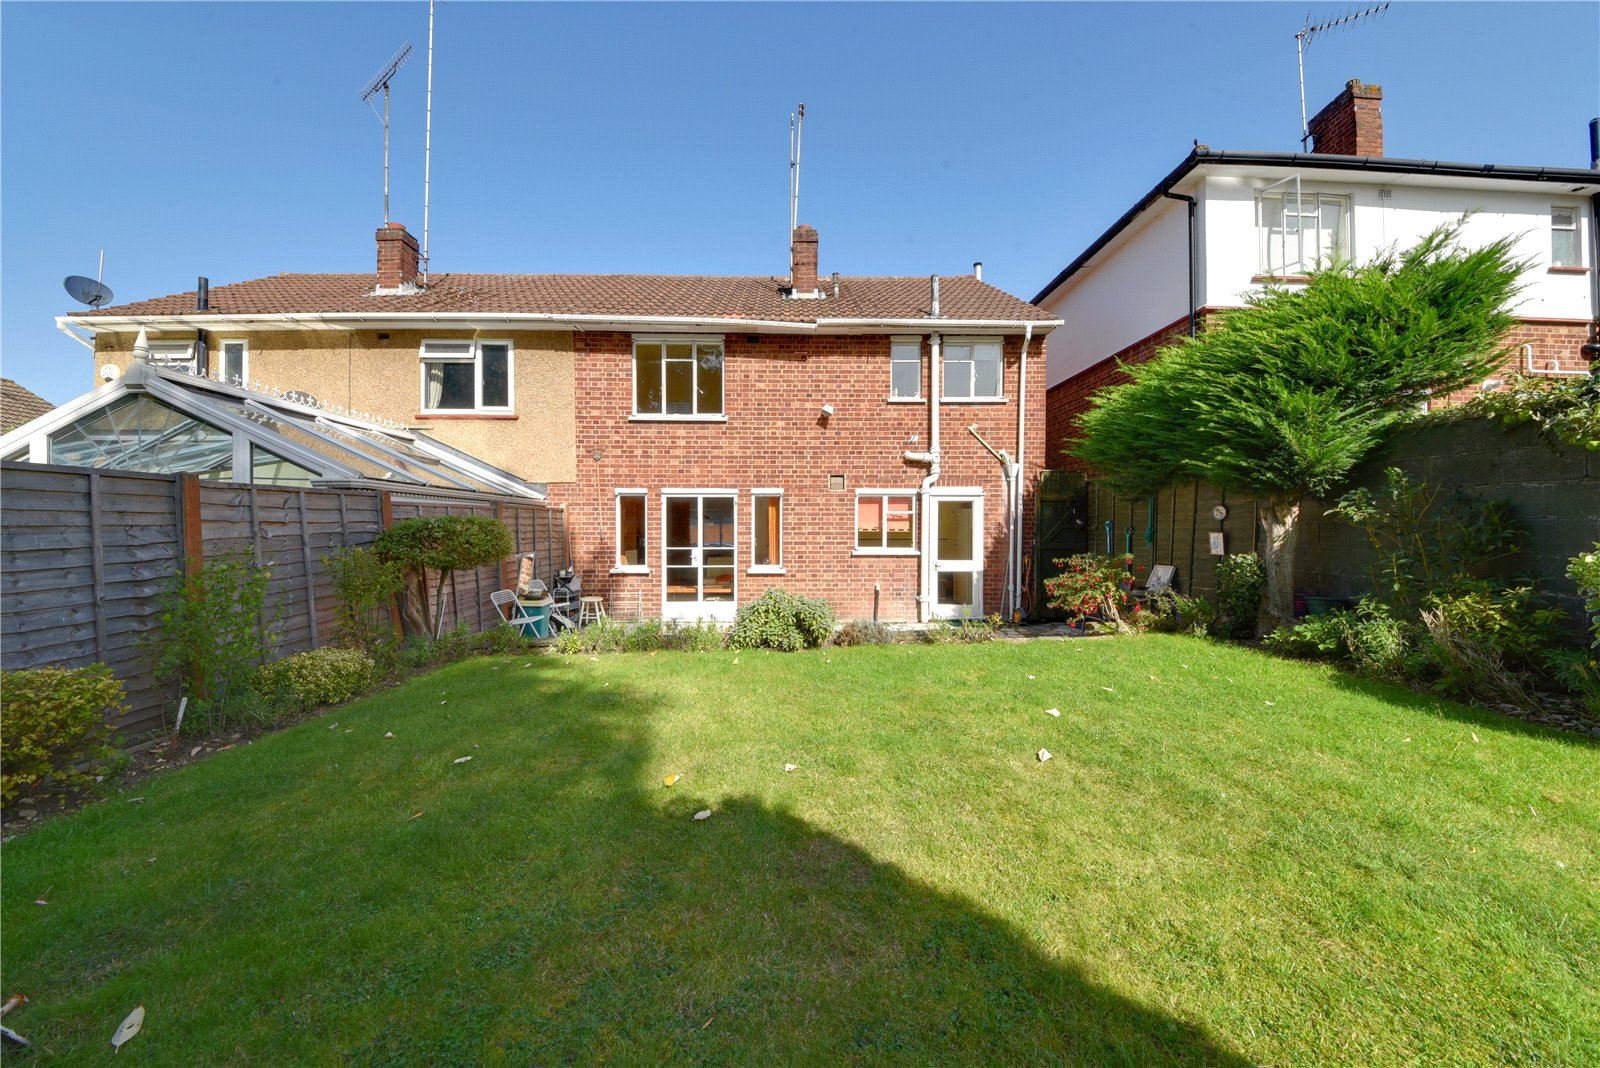 3 bed house for sale in West Finchley, N3 1PB 10